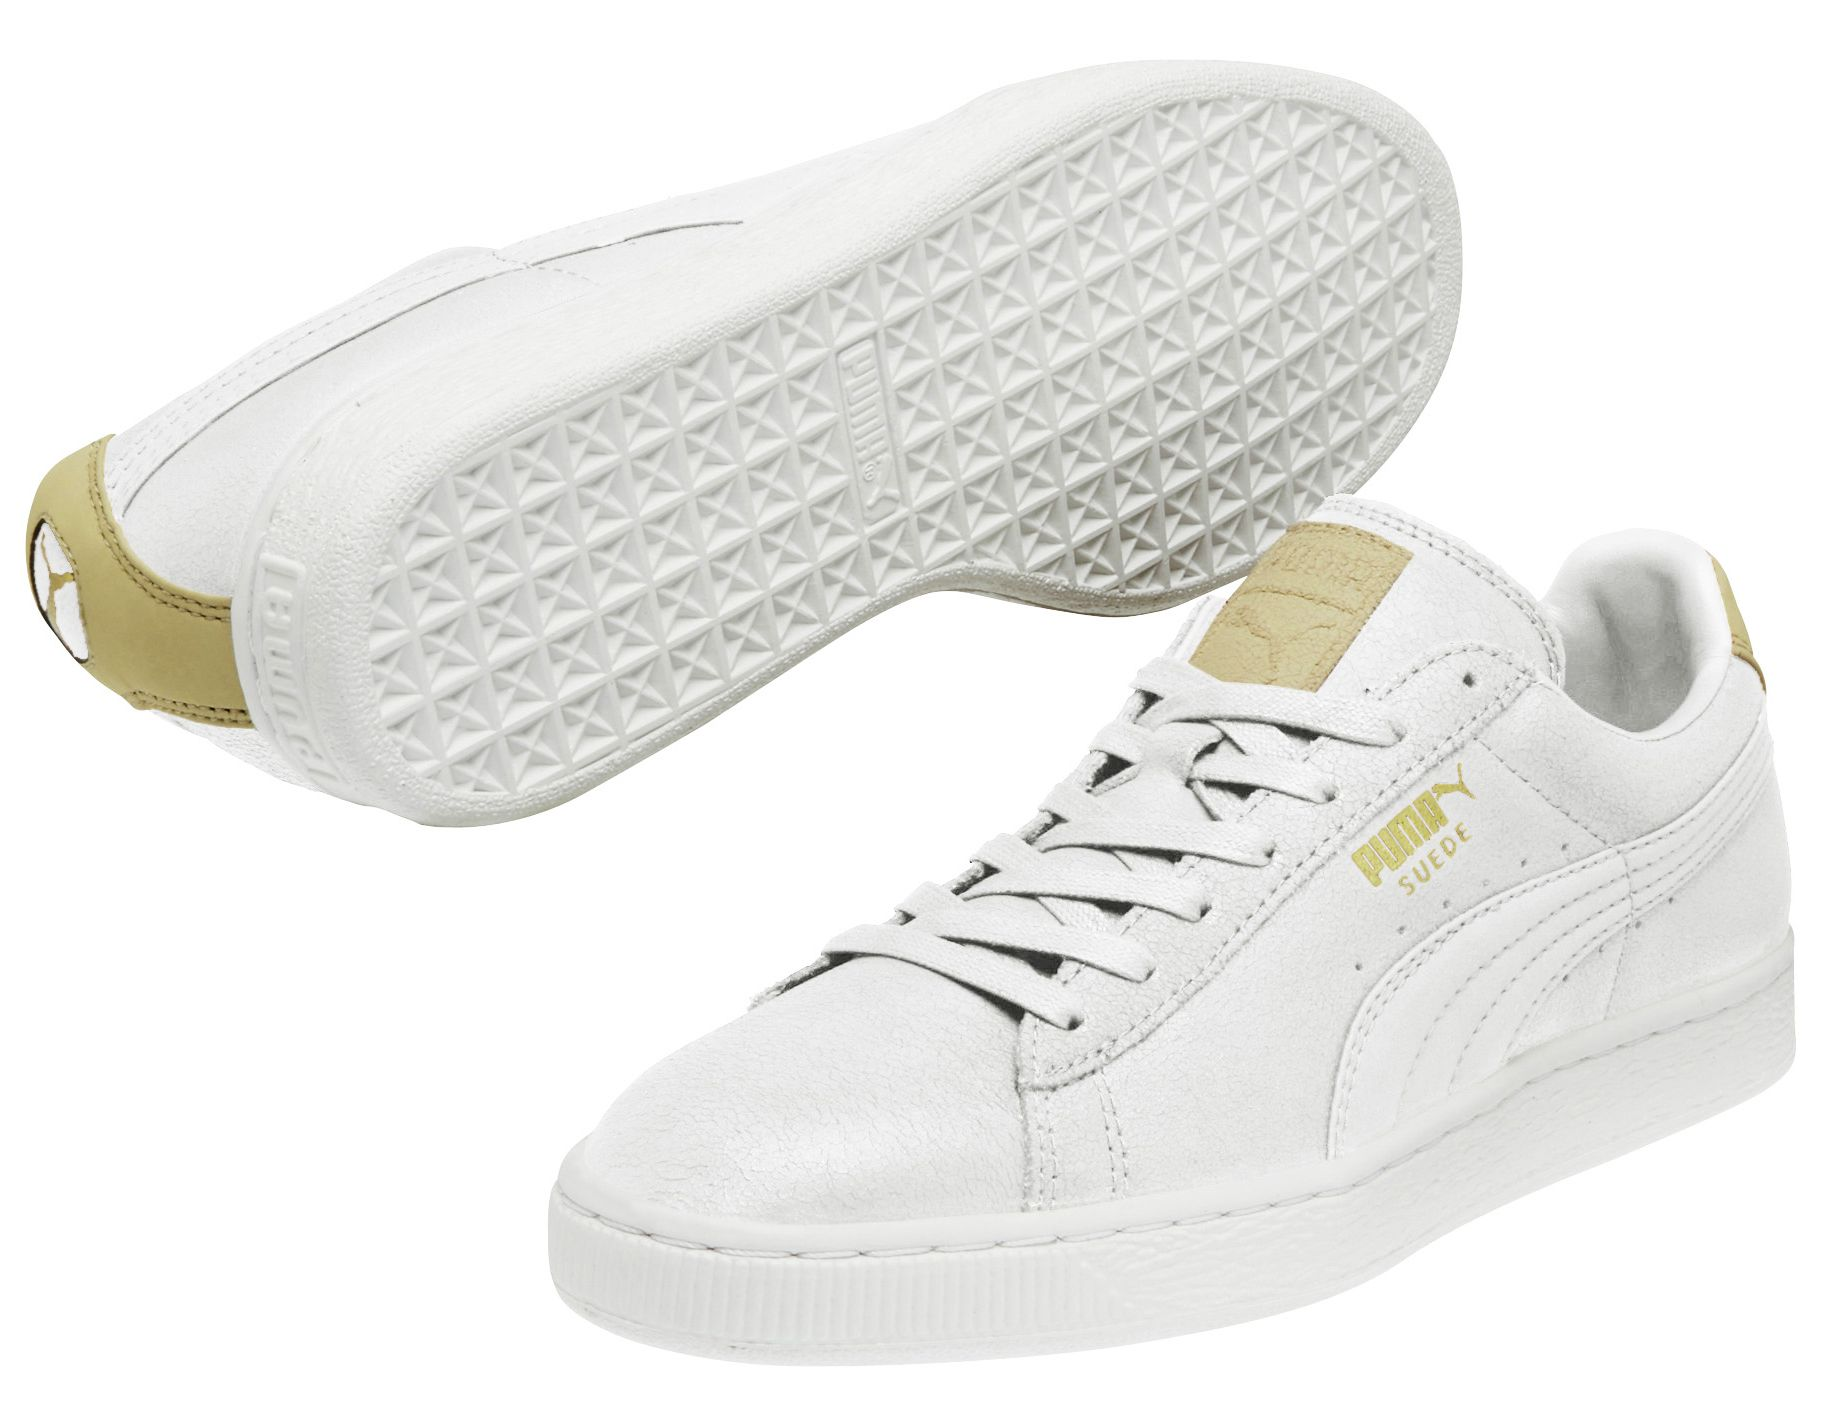 Chaussures Puma Suede blanches femme Ng0oB